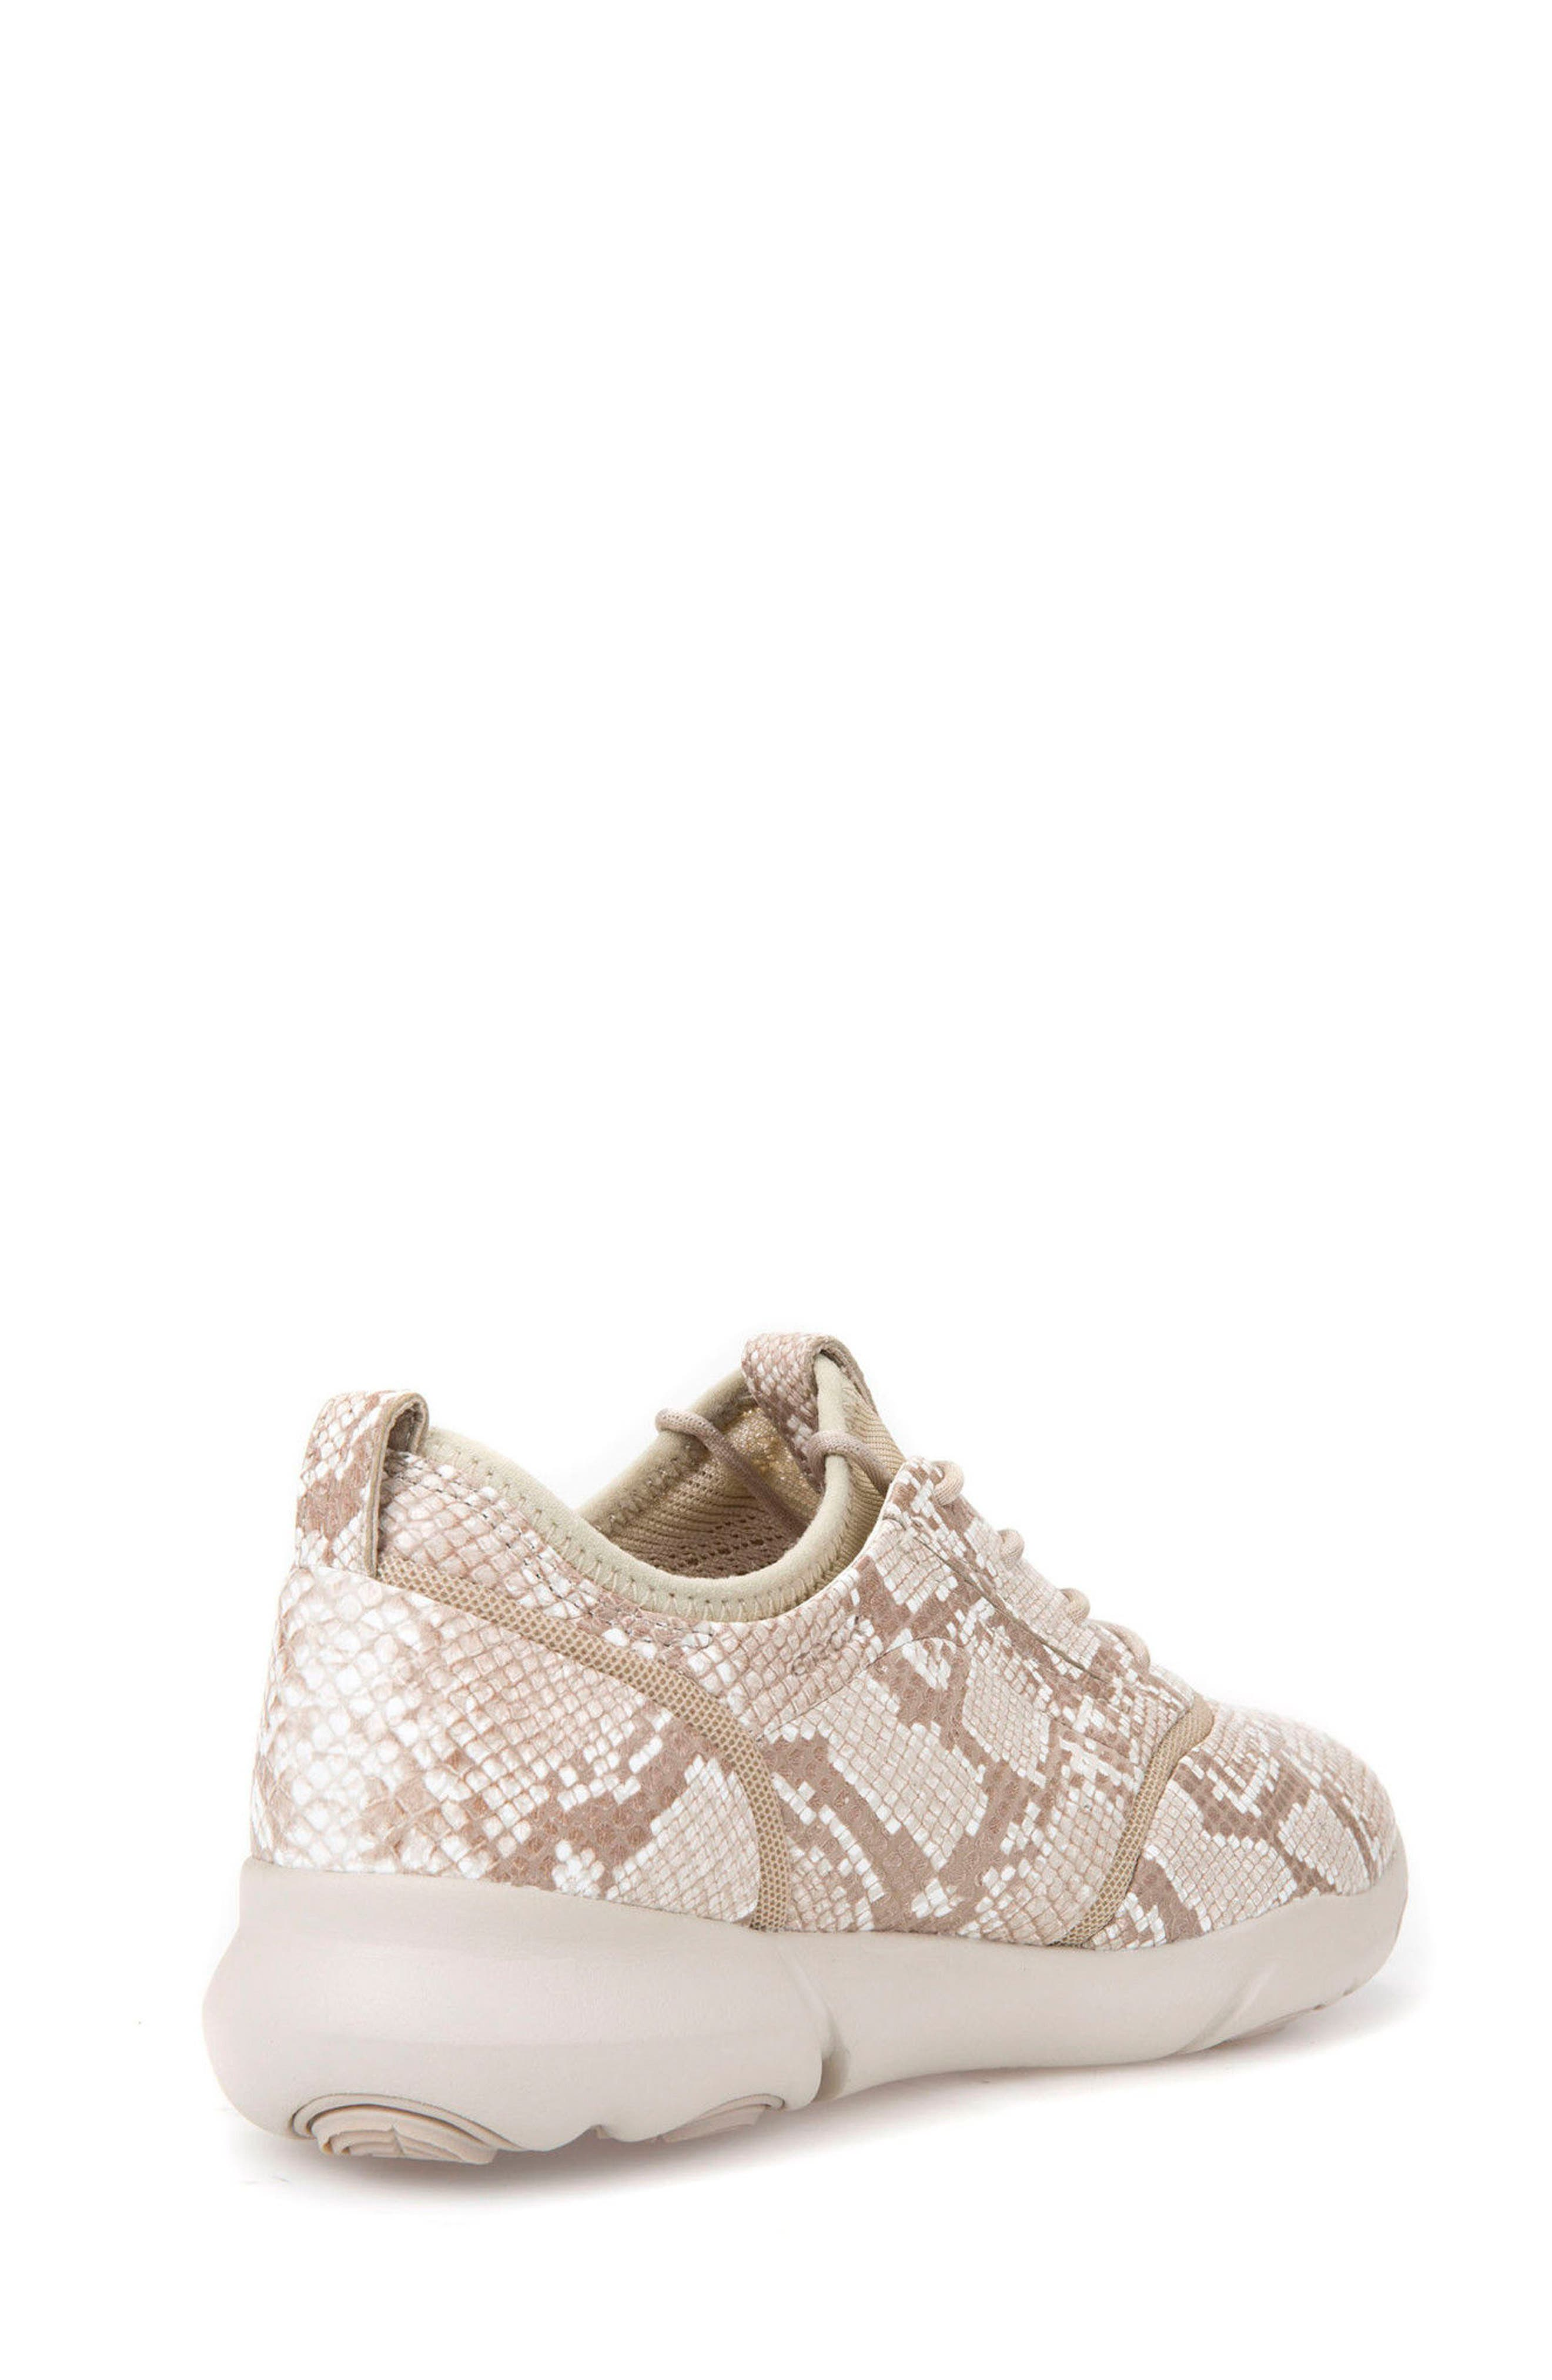 Nebula S 1 Python Embossed Sneaker,                             Alternate thumbnail 2, color,                             Beige Leather